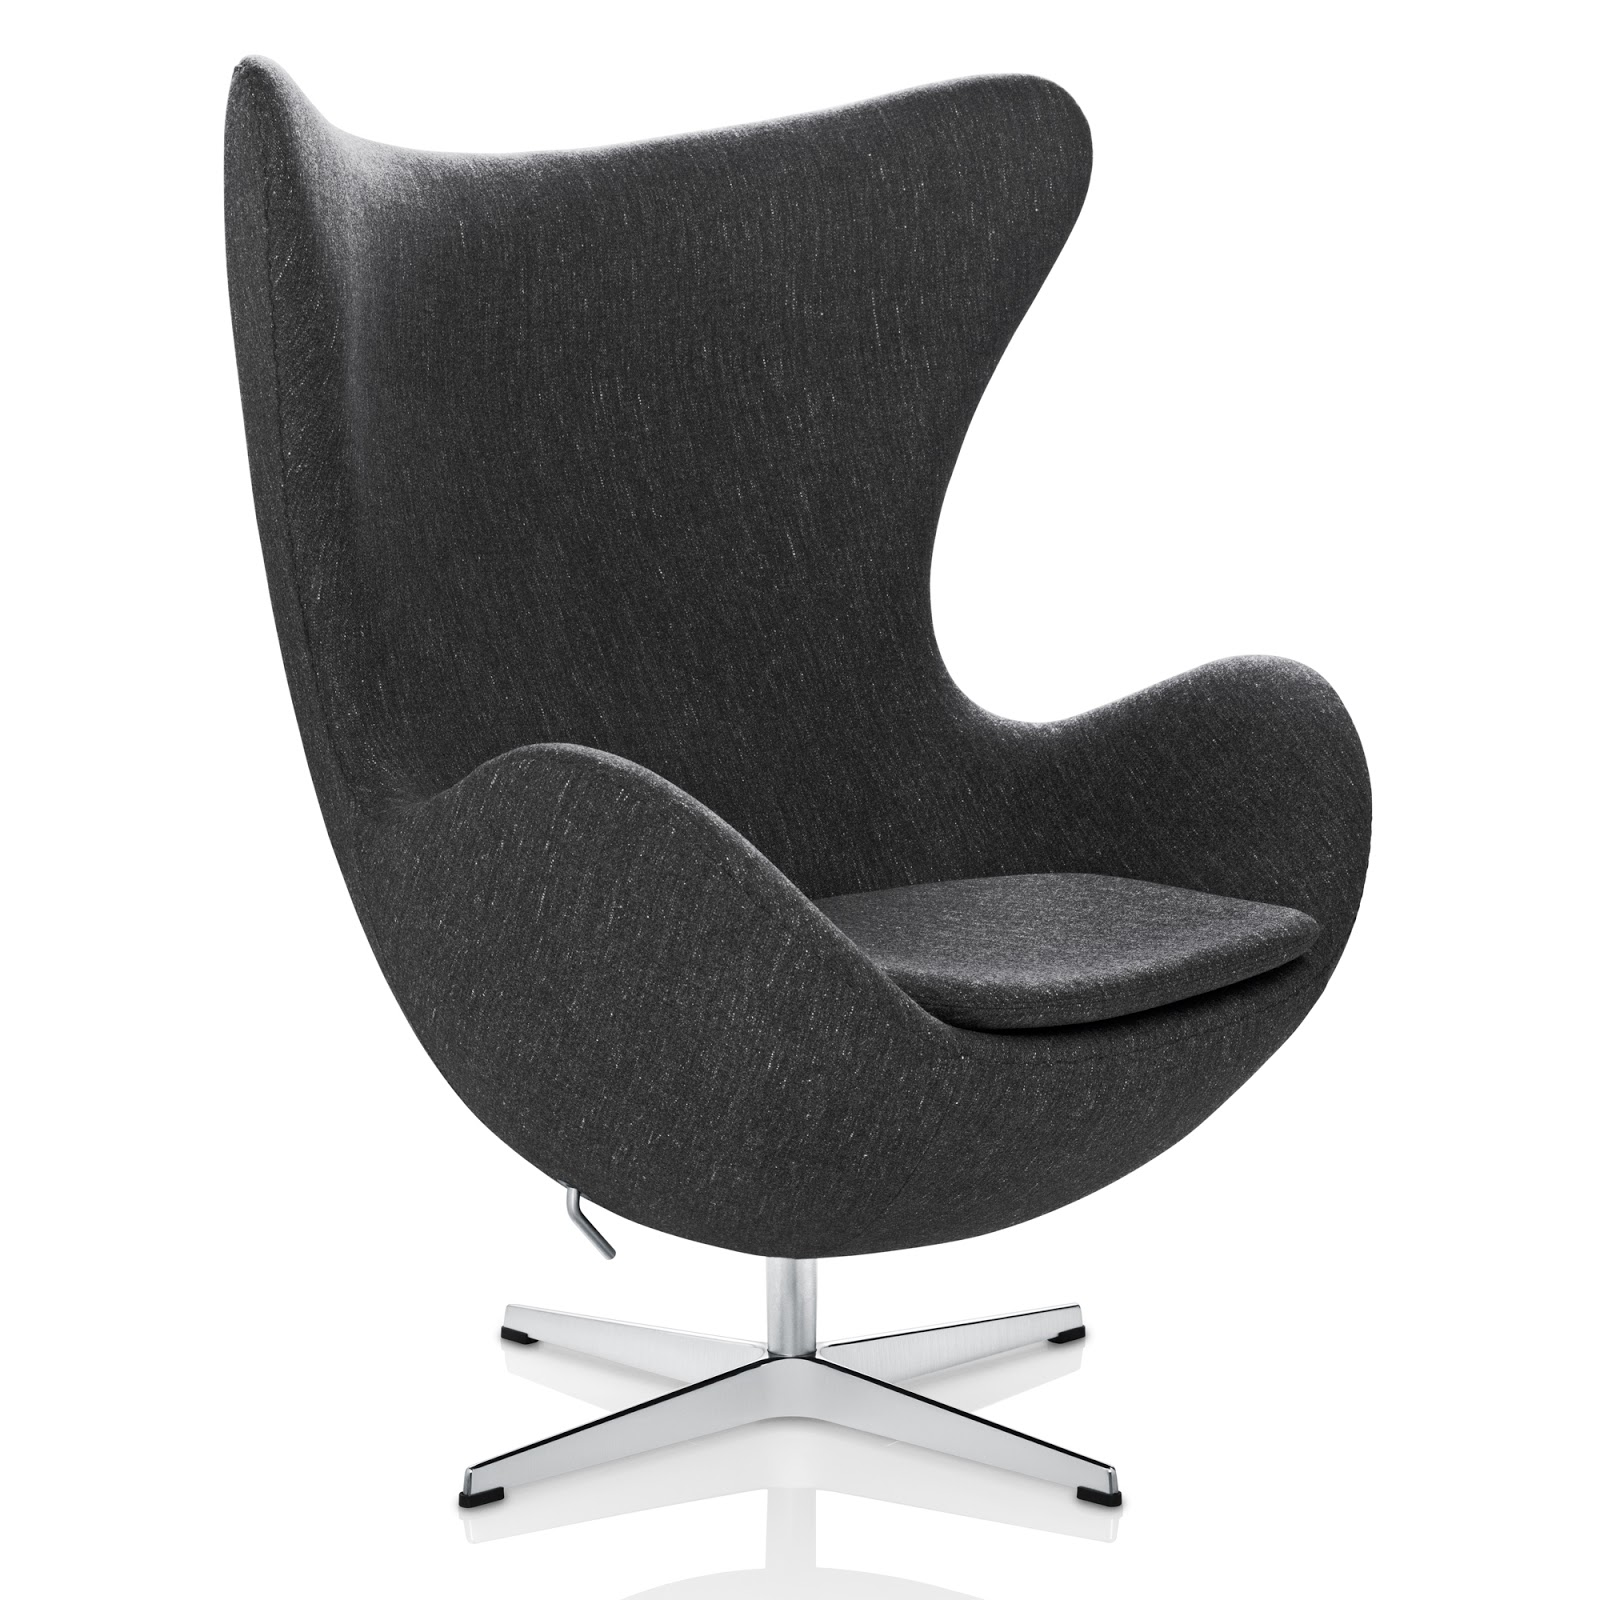 jacobsen egg chairs saville row suite upholstery all colors